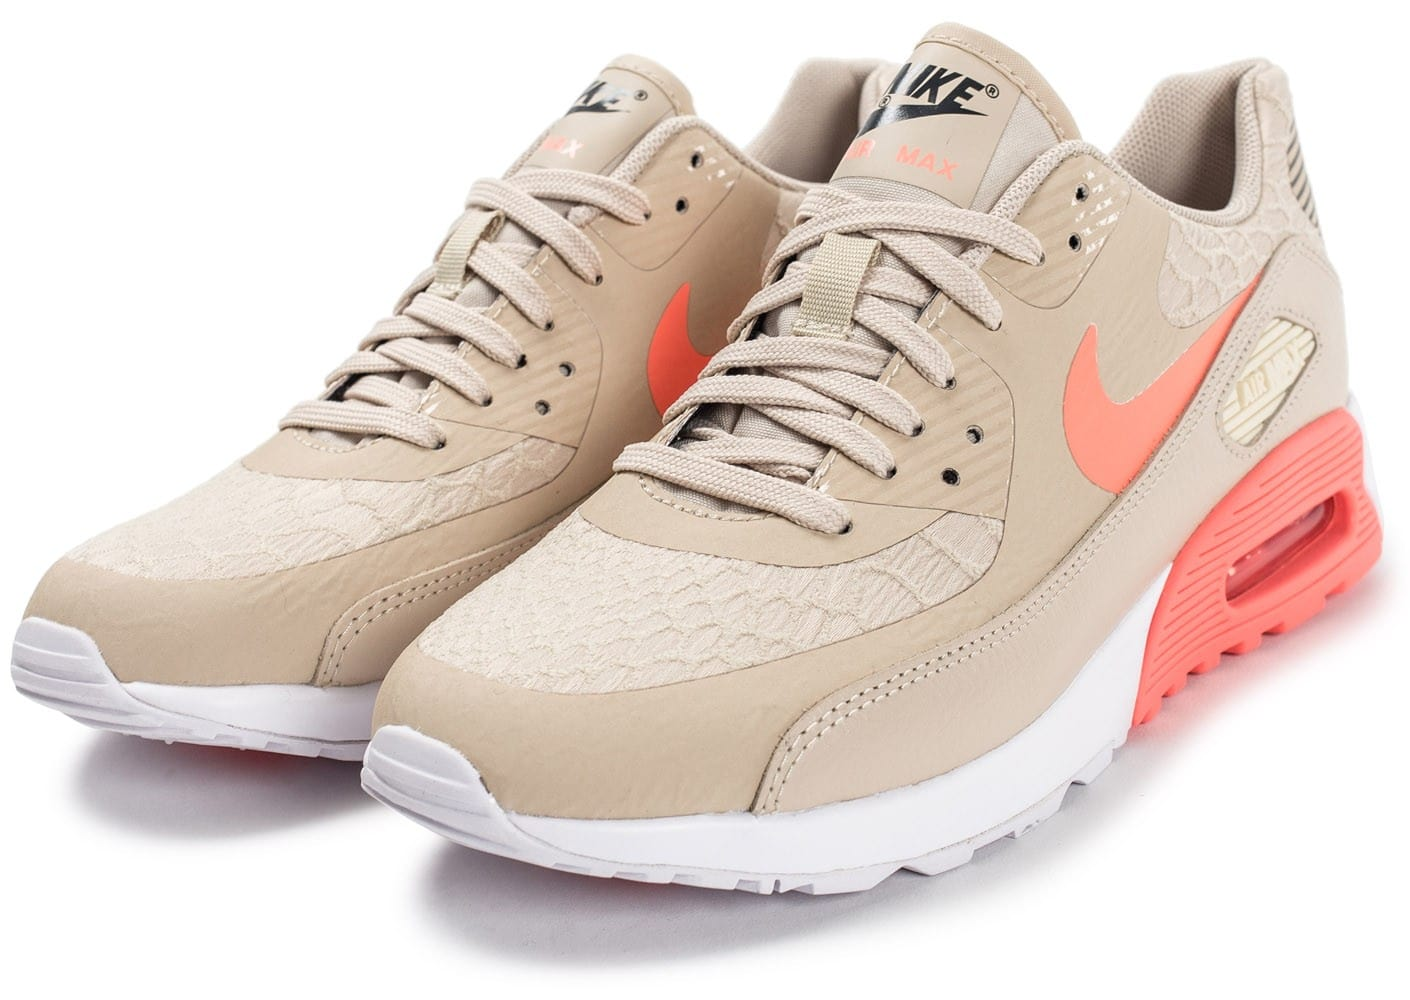 new concept ded58 91bcd Chaussures Nike Air Max 90 Ultra 2.0 beige et rose vue intérieure .